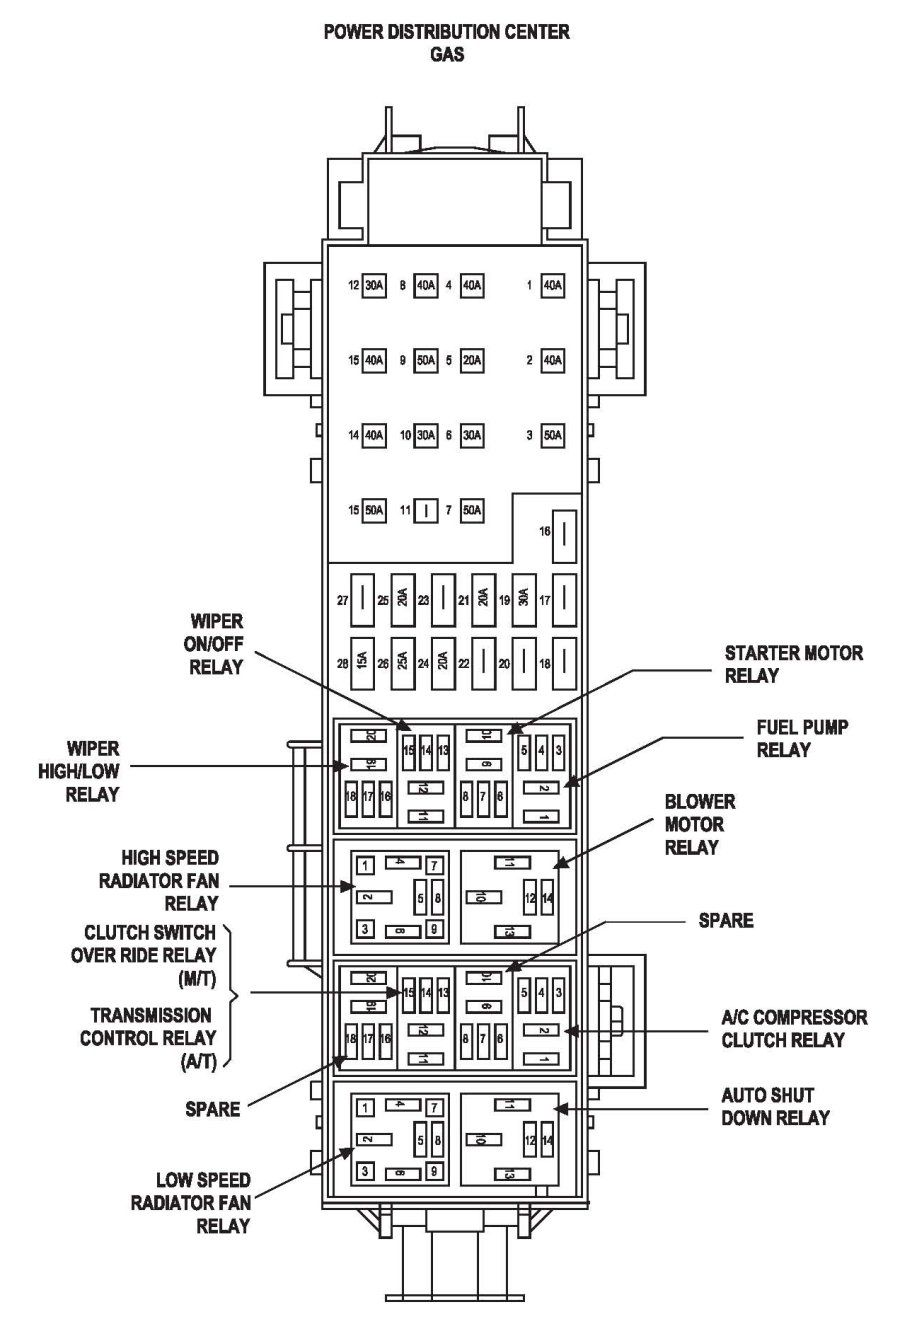 b3536c3739783eb19f827744cc42c3c4 jeep liberty fuse box diagram image details jeep liberty 2004 jeep wrangler fuse box diagram at creativeand.co